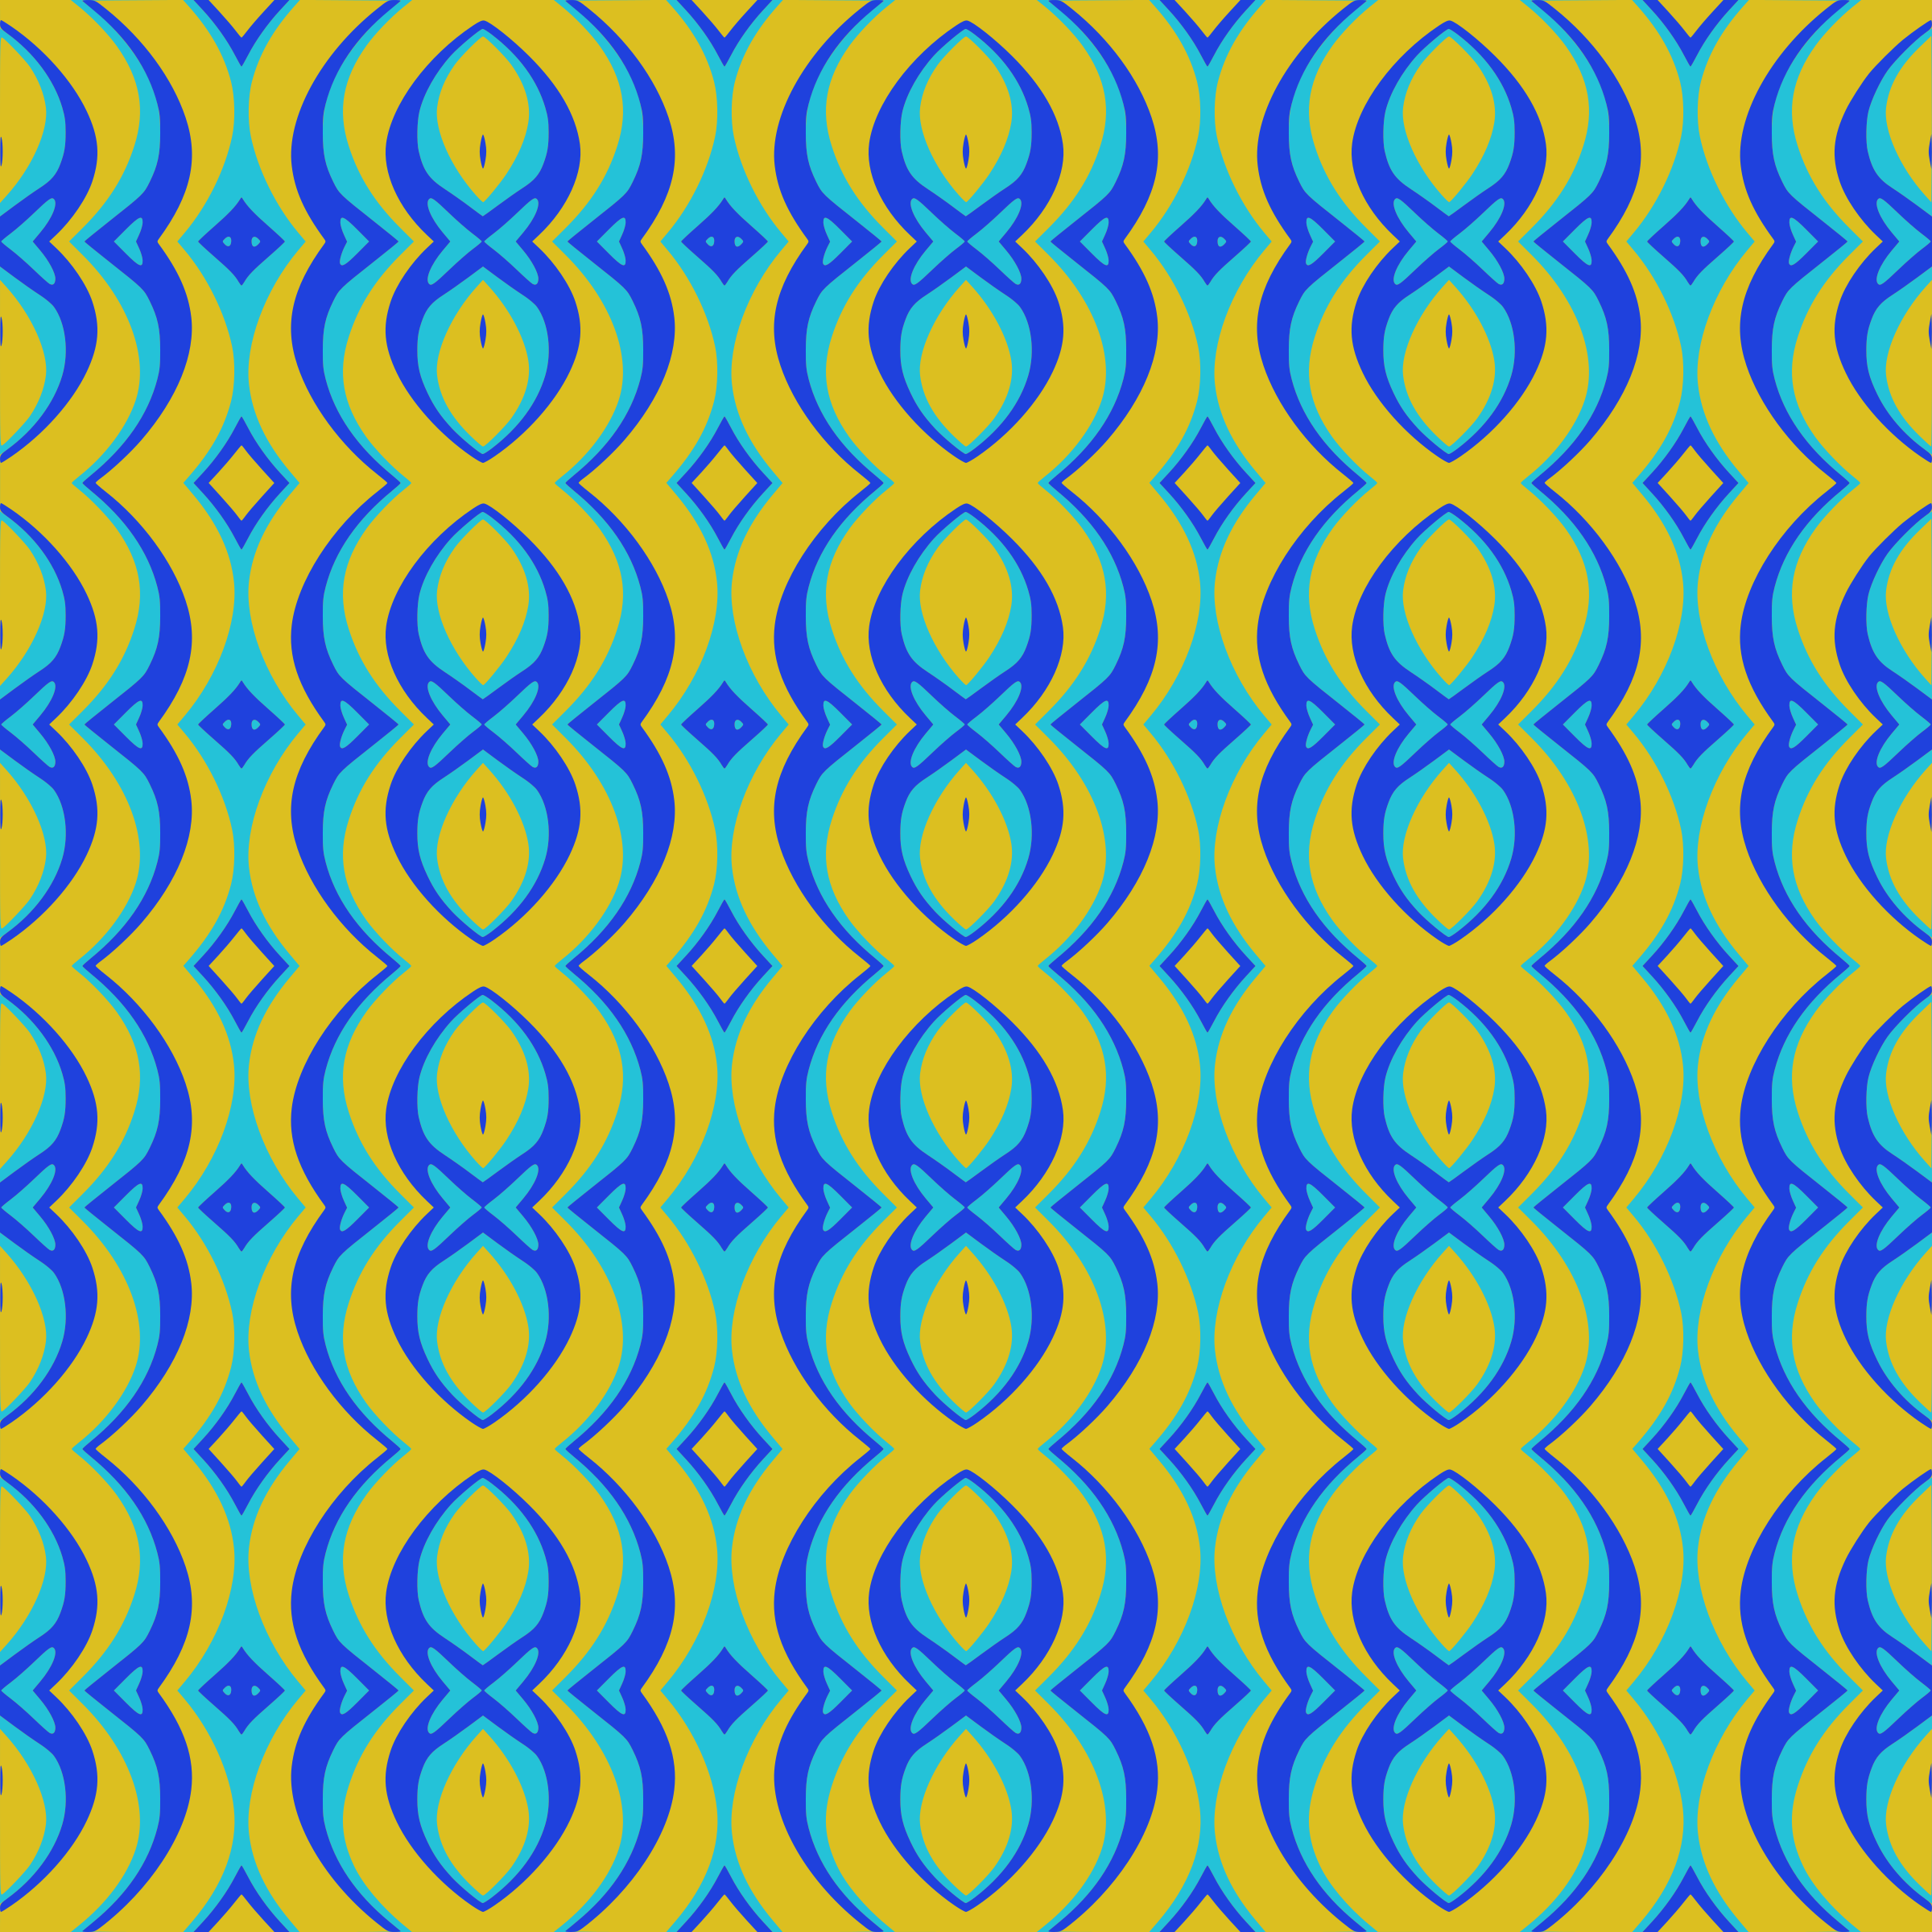 Background pattern 56 (reduced colour count) by Firkin